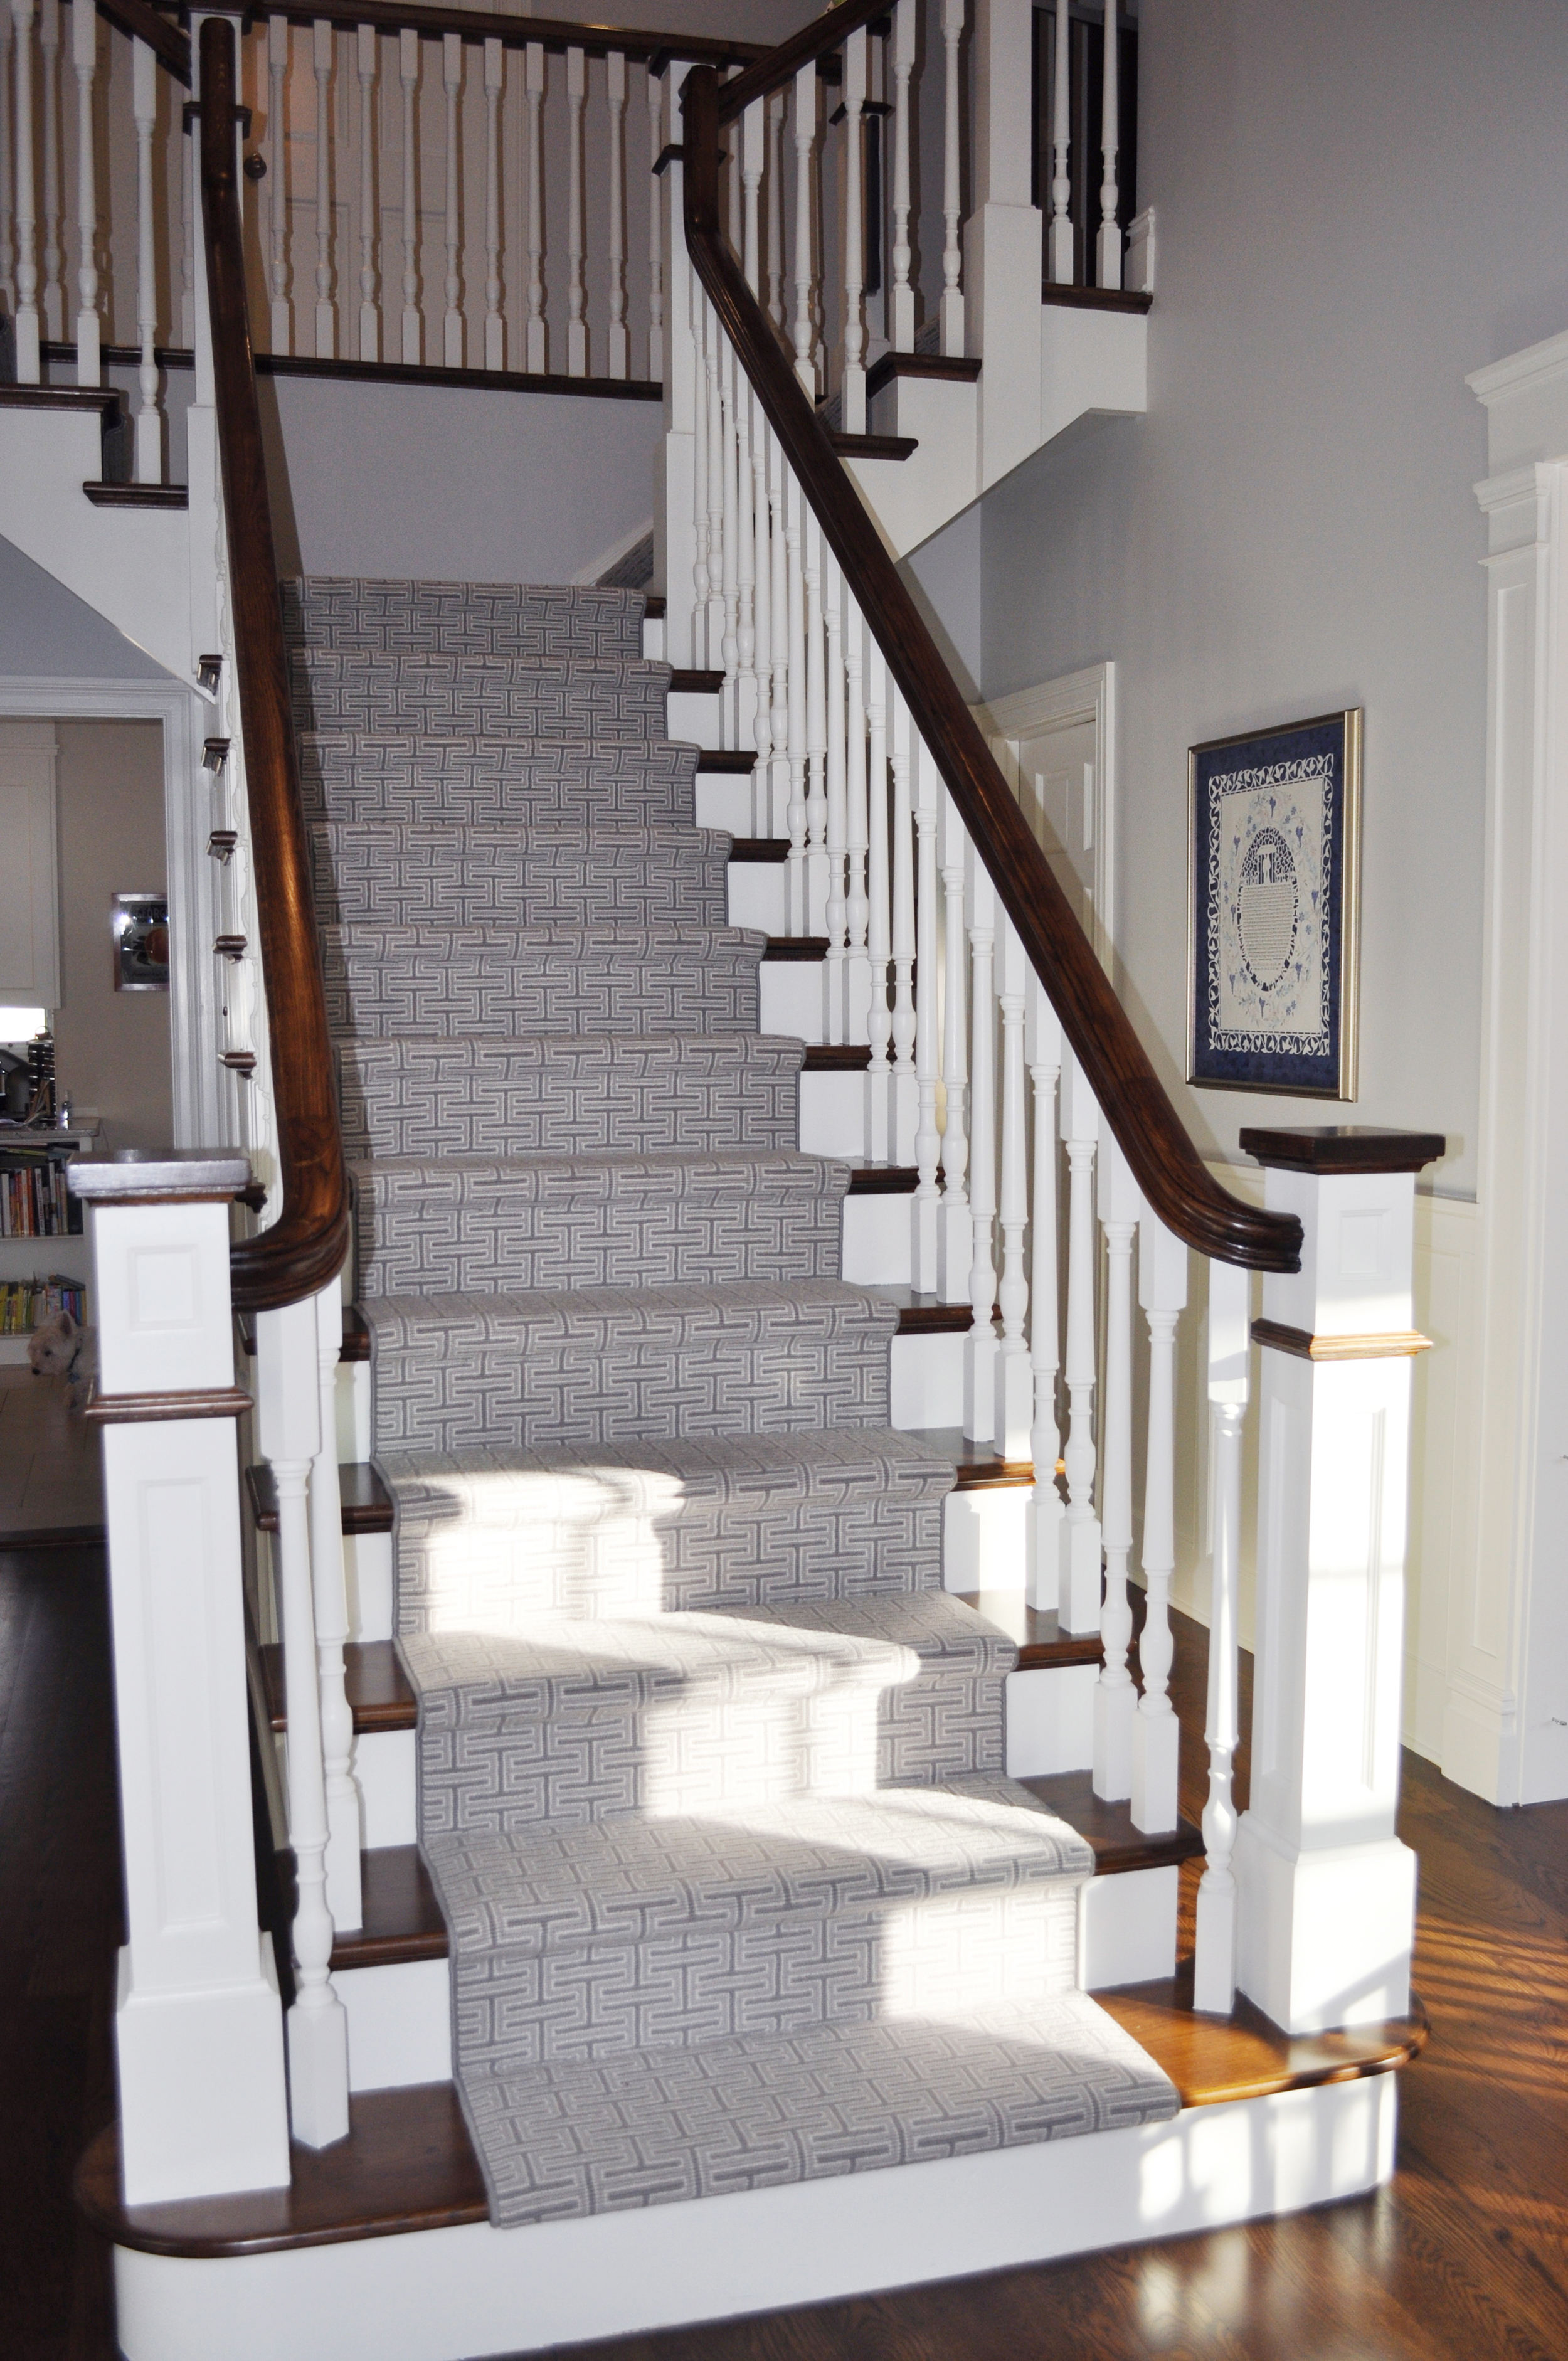 KAM DESIGN LLC_New Rochelle_Entry Stair Carpeting_Grey Stair Runner_Modern Stair Runner.jpg